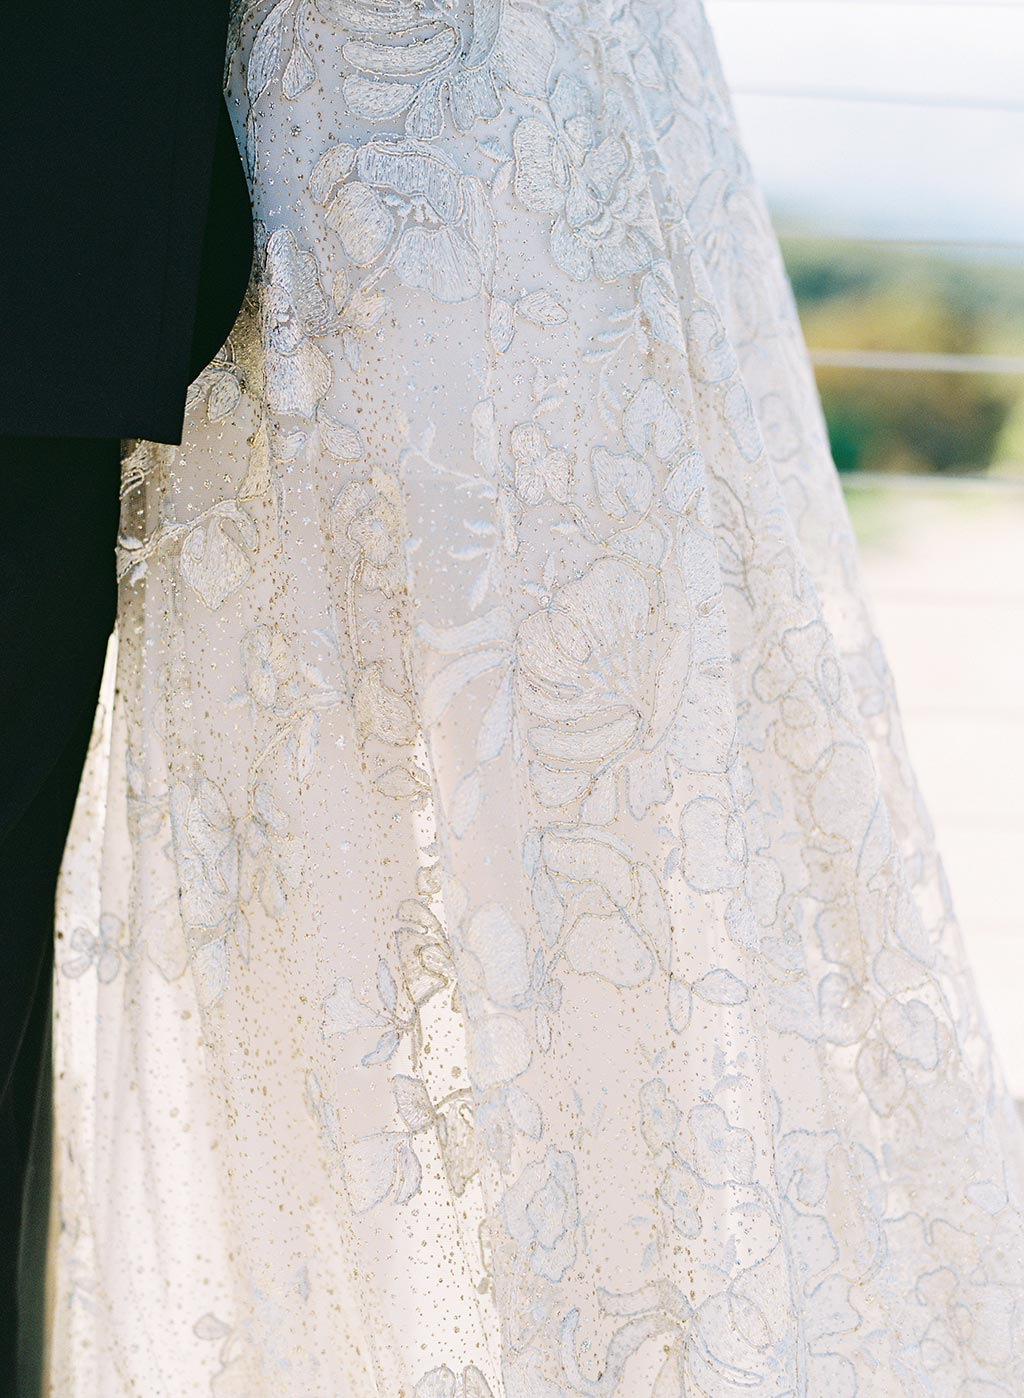 Soleil Shimmery Wedding Dress Lace Detail